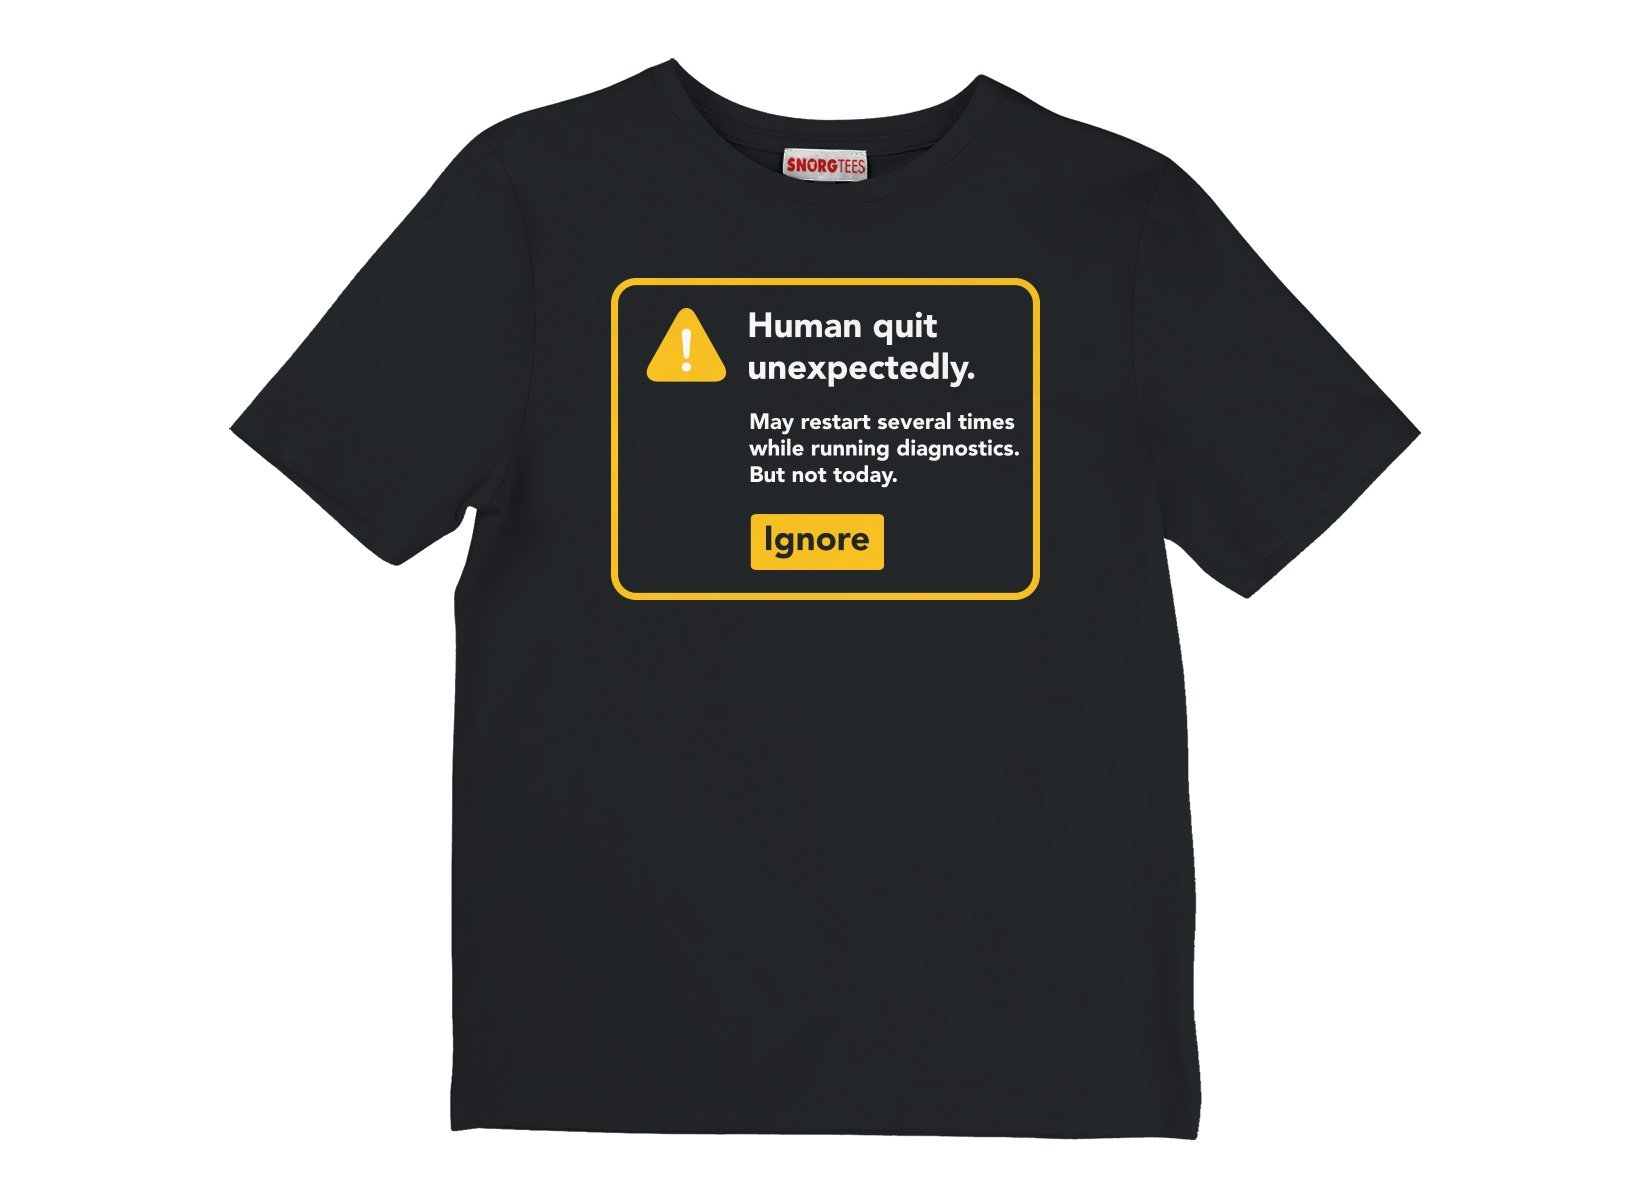 Human Quit Unexpectedly on Kids T-Shirt